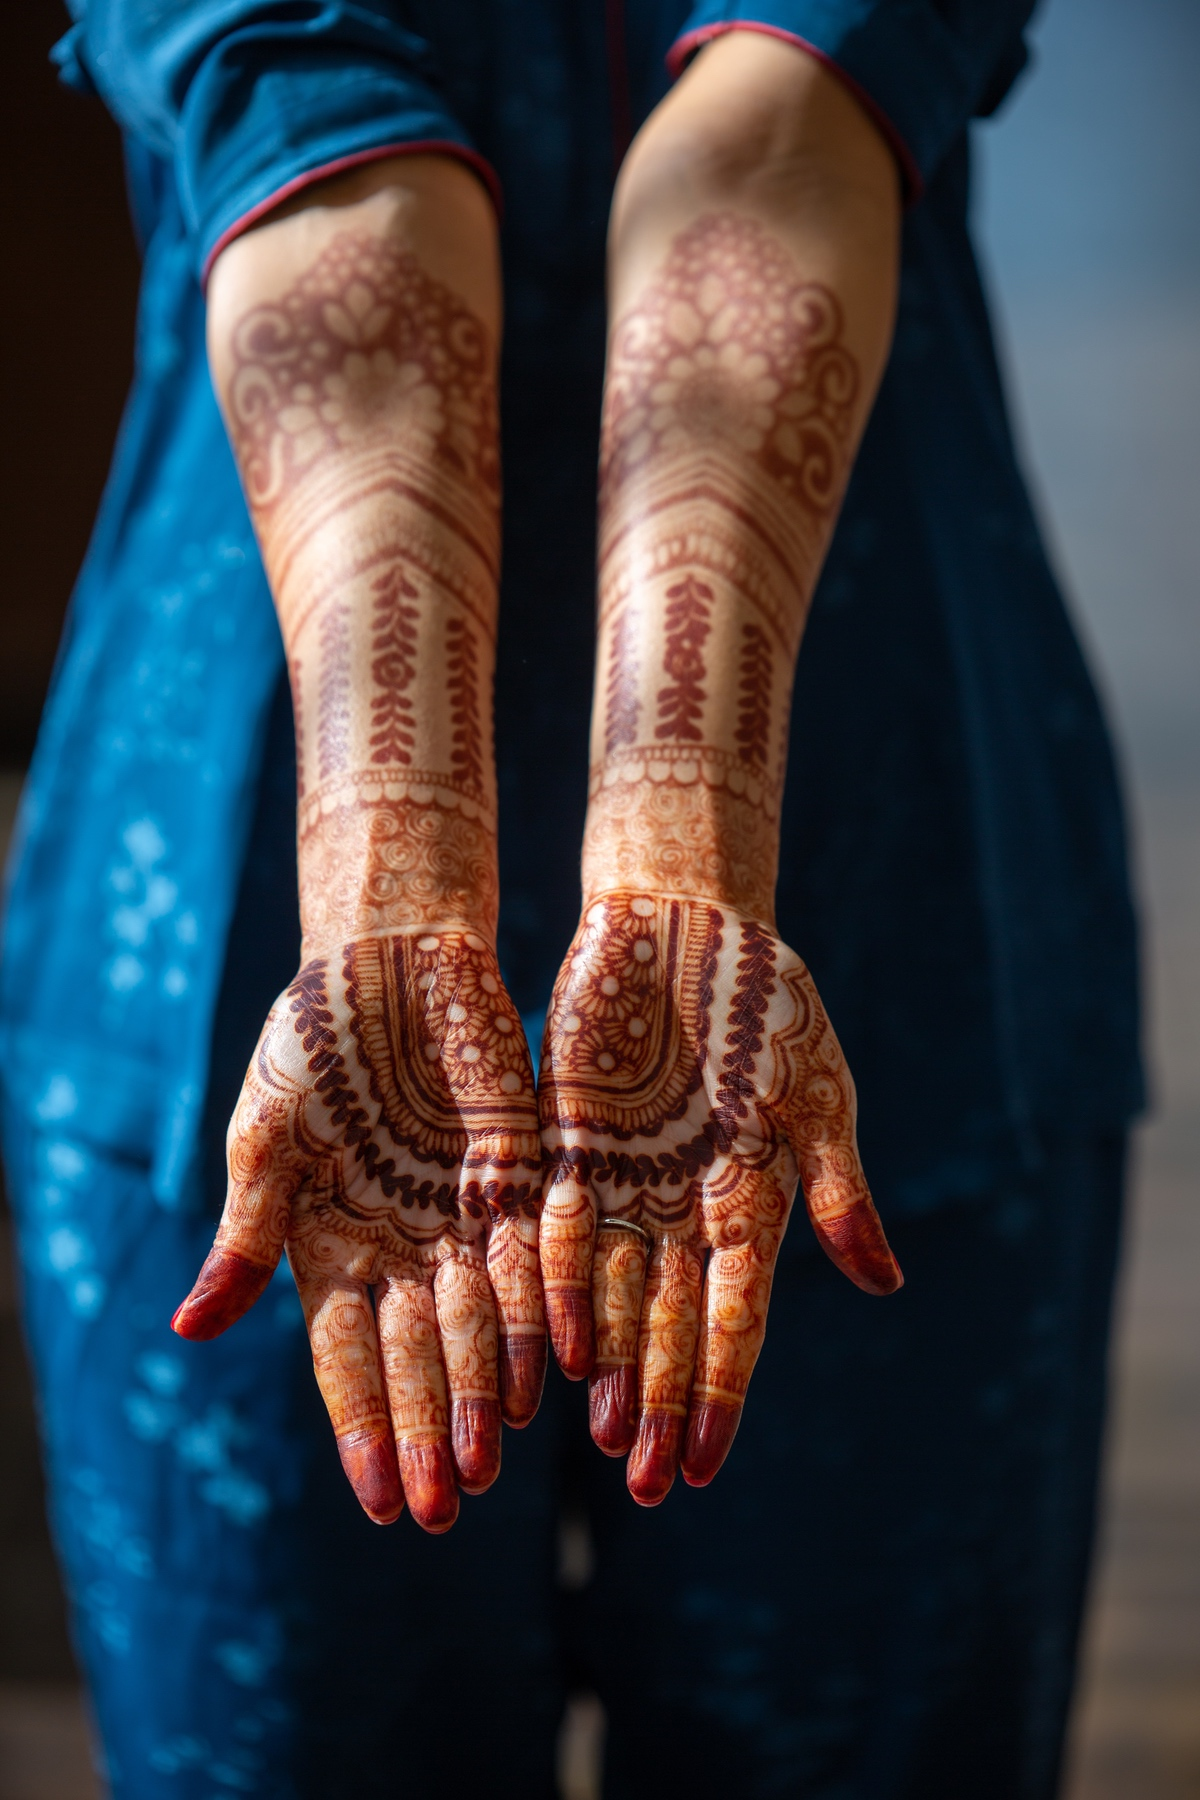 Le Cape Weddings - South Asian Wedding - Chicago Wedding Photographer P&V-18.jpg